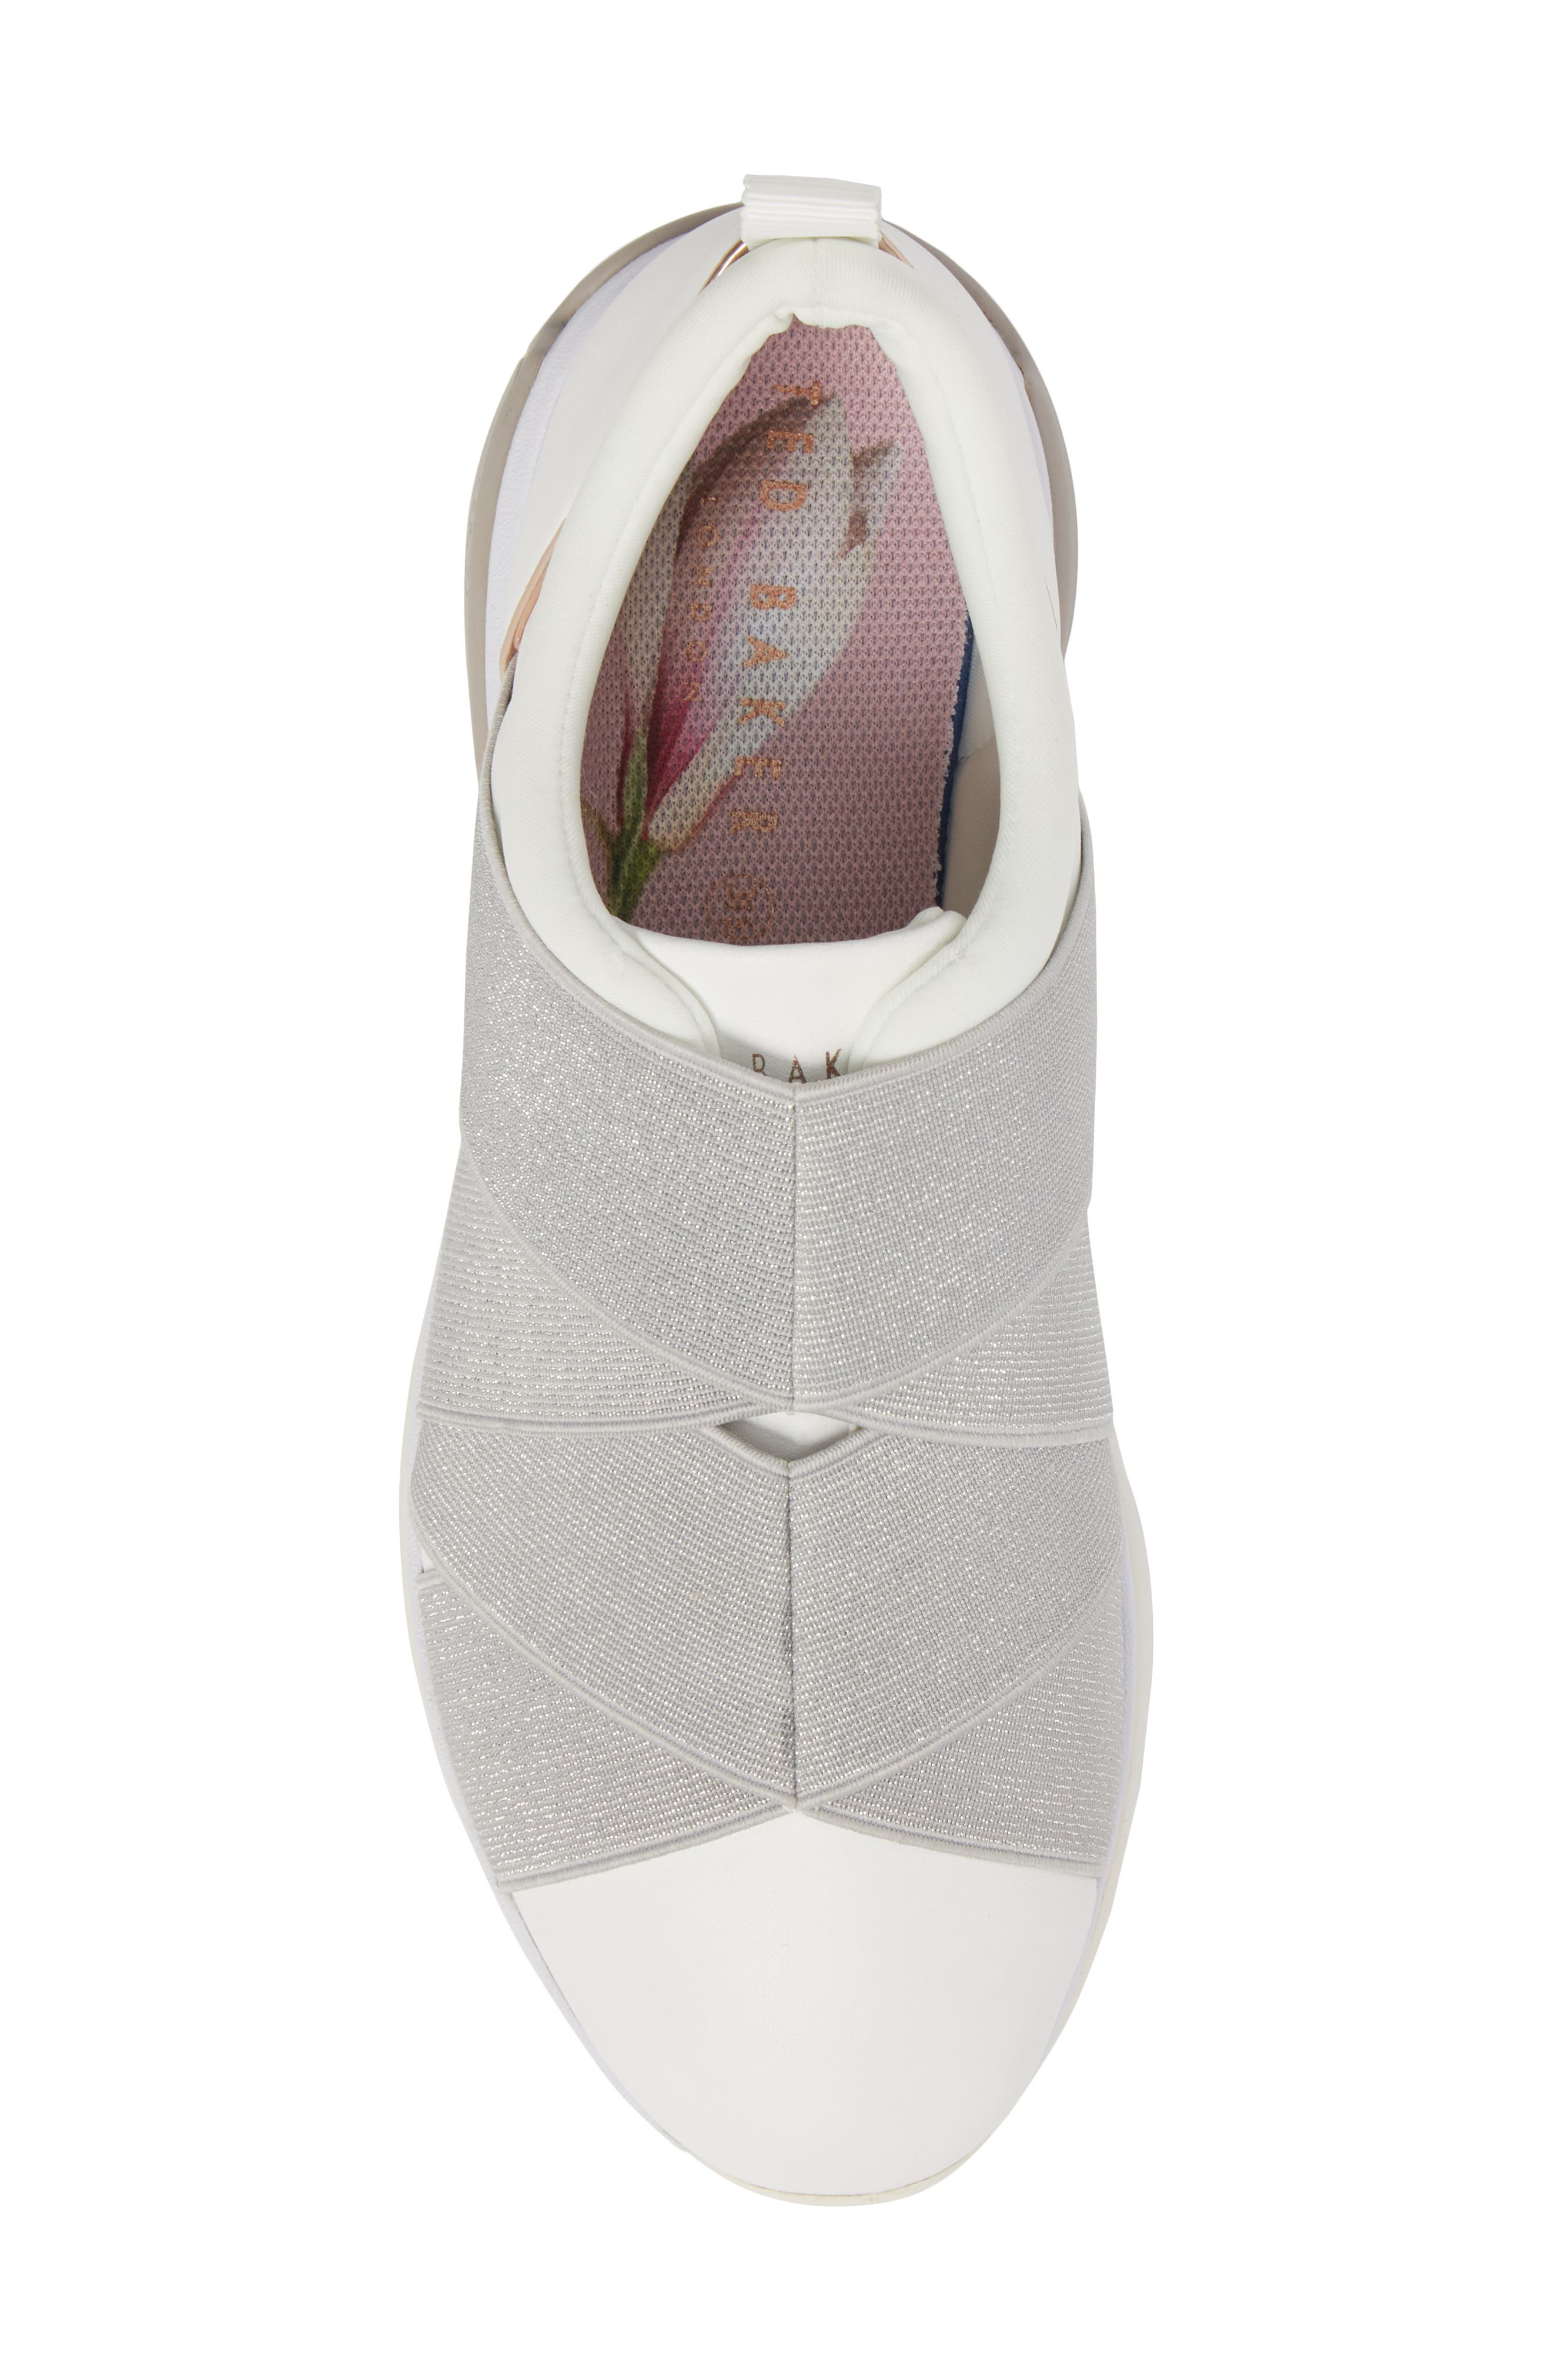 Queane Sneaker,                             Alternate thumbnail 5, color,                             White/ Silver Leather